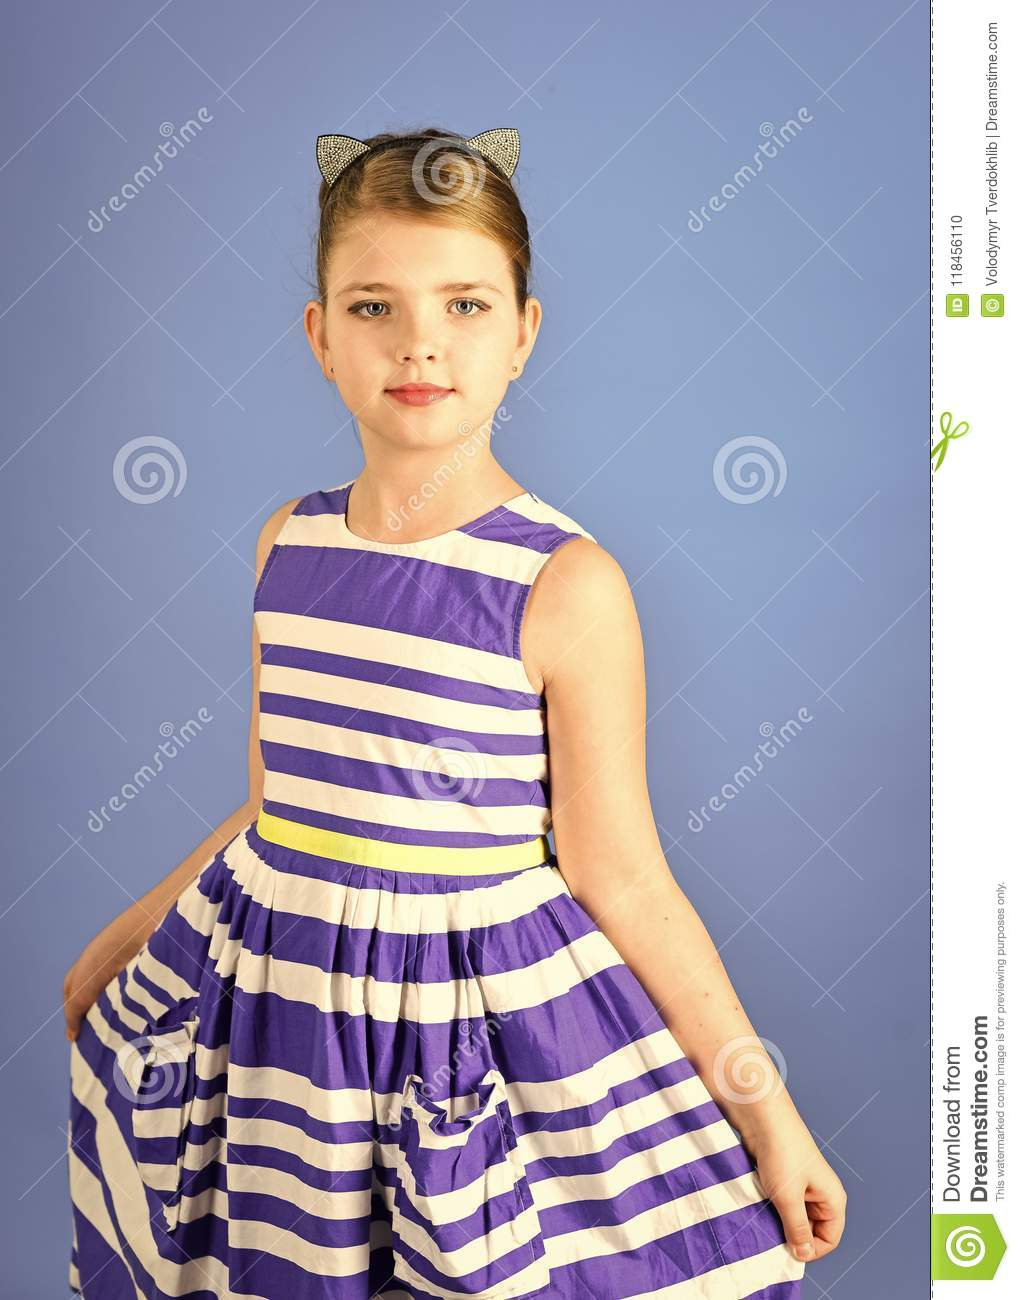 ee079657711 Potrait of little girl child. Retro look and hairdresser